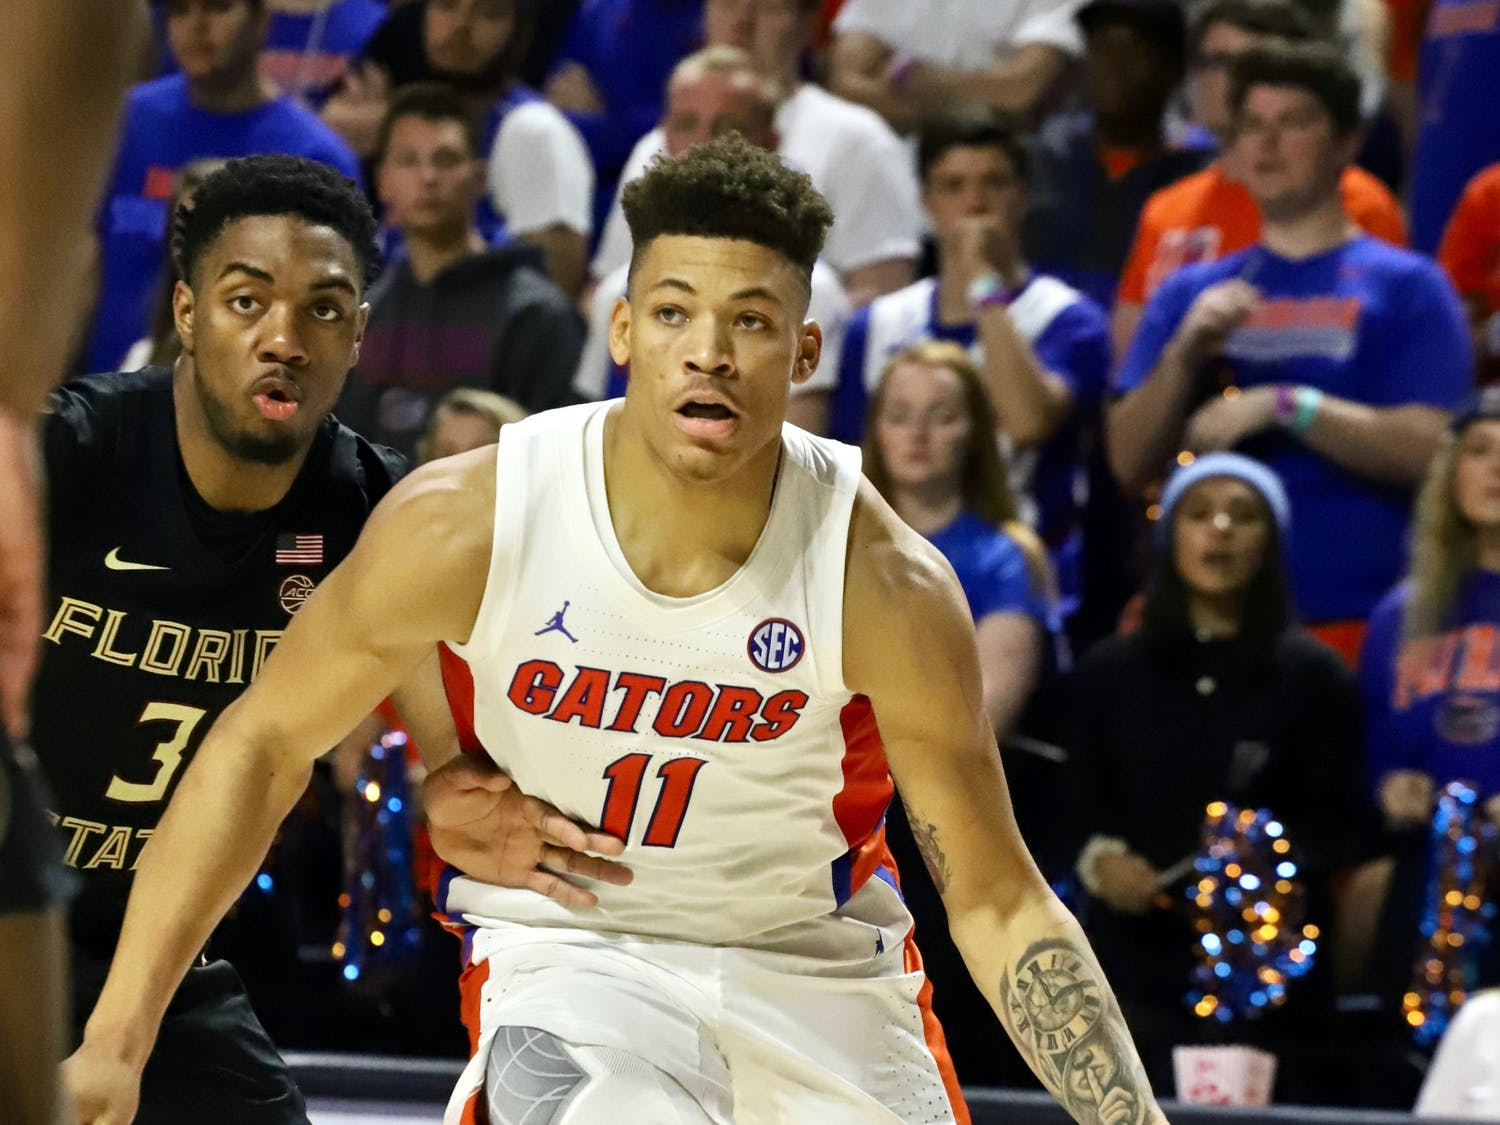 Junior Keyontae Johnson collapsed at midcourt Saturday after a timeout during Florida's game against rival FSU.